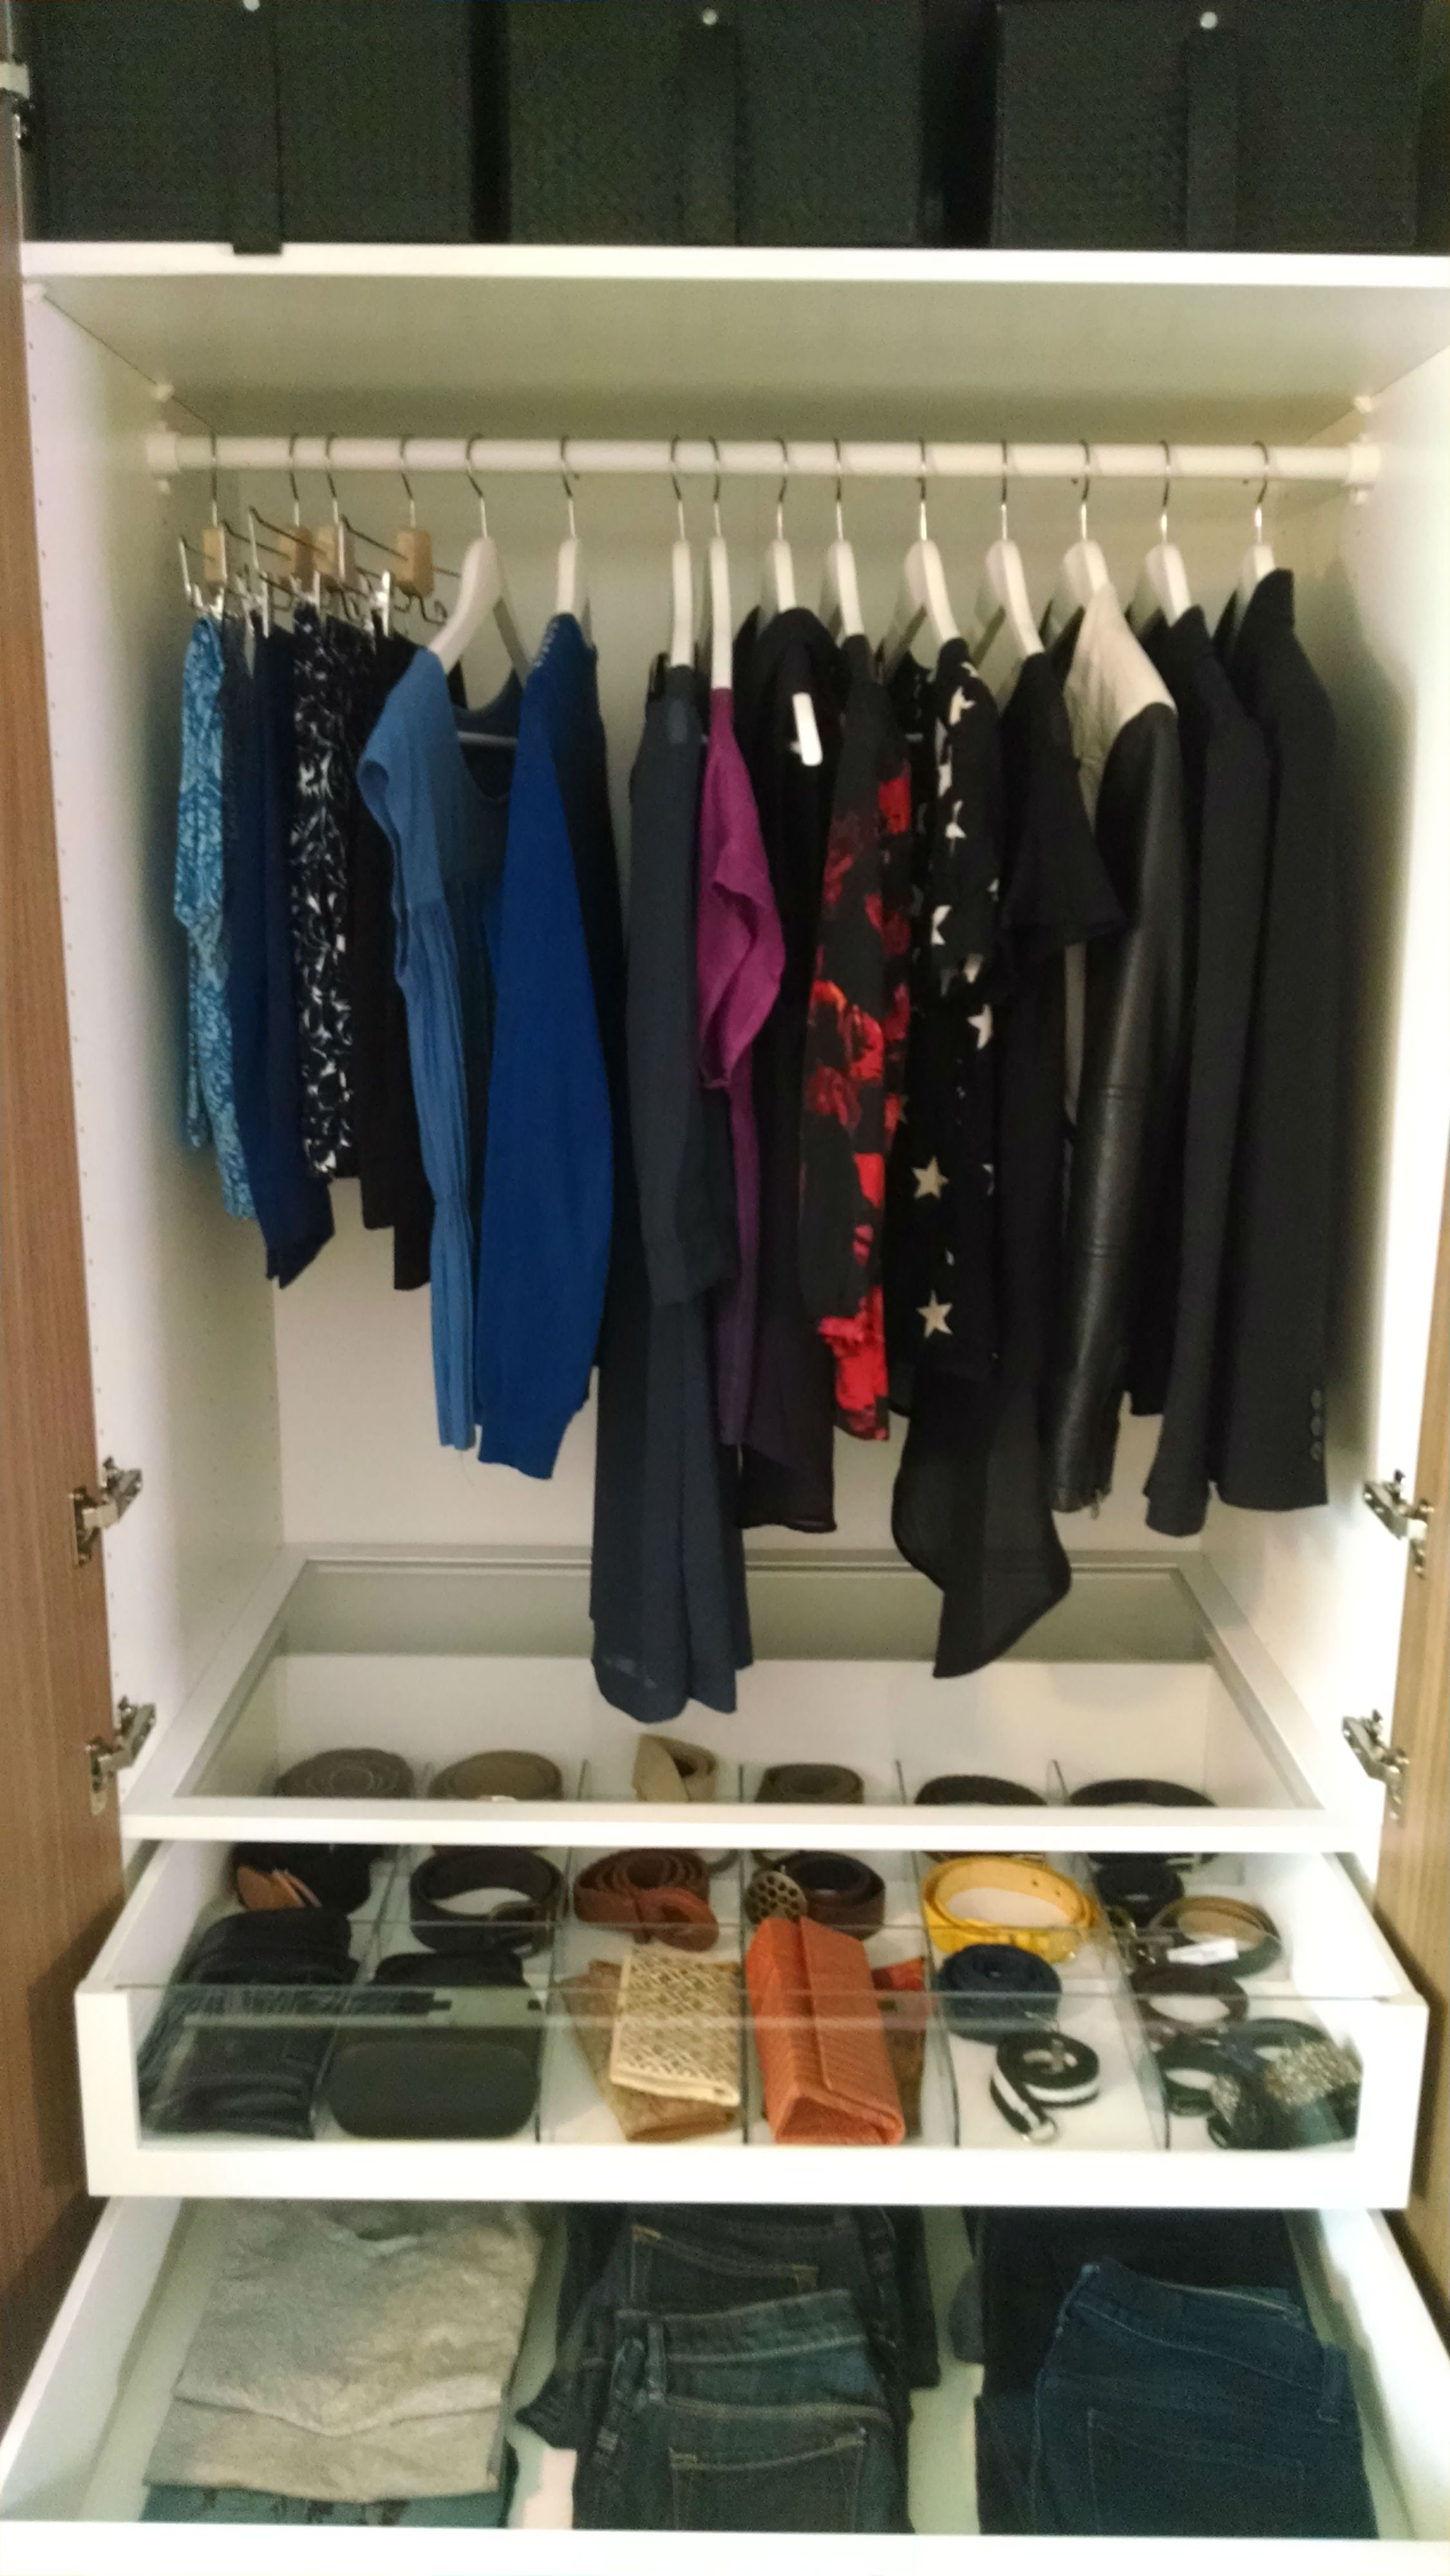 PAX Wardrobe Lets You See All Of Your Options For The Day. From Tops, To  Bottoms, To Accessories U2013 Glass KOMPLEMENT Inserts Gives Your Day The Good  Start ...